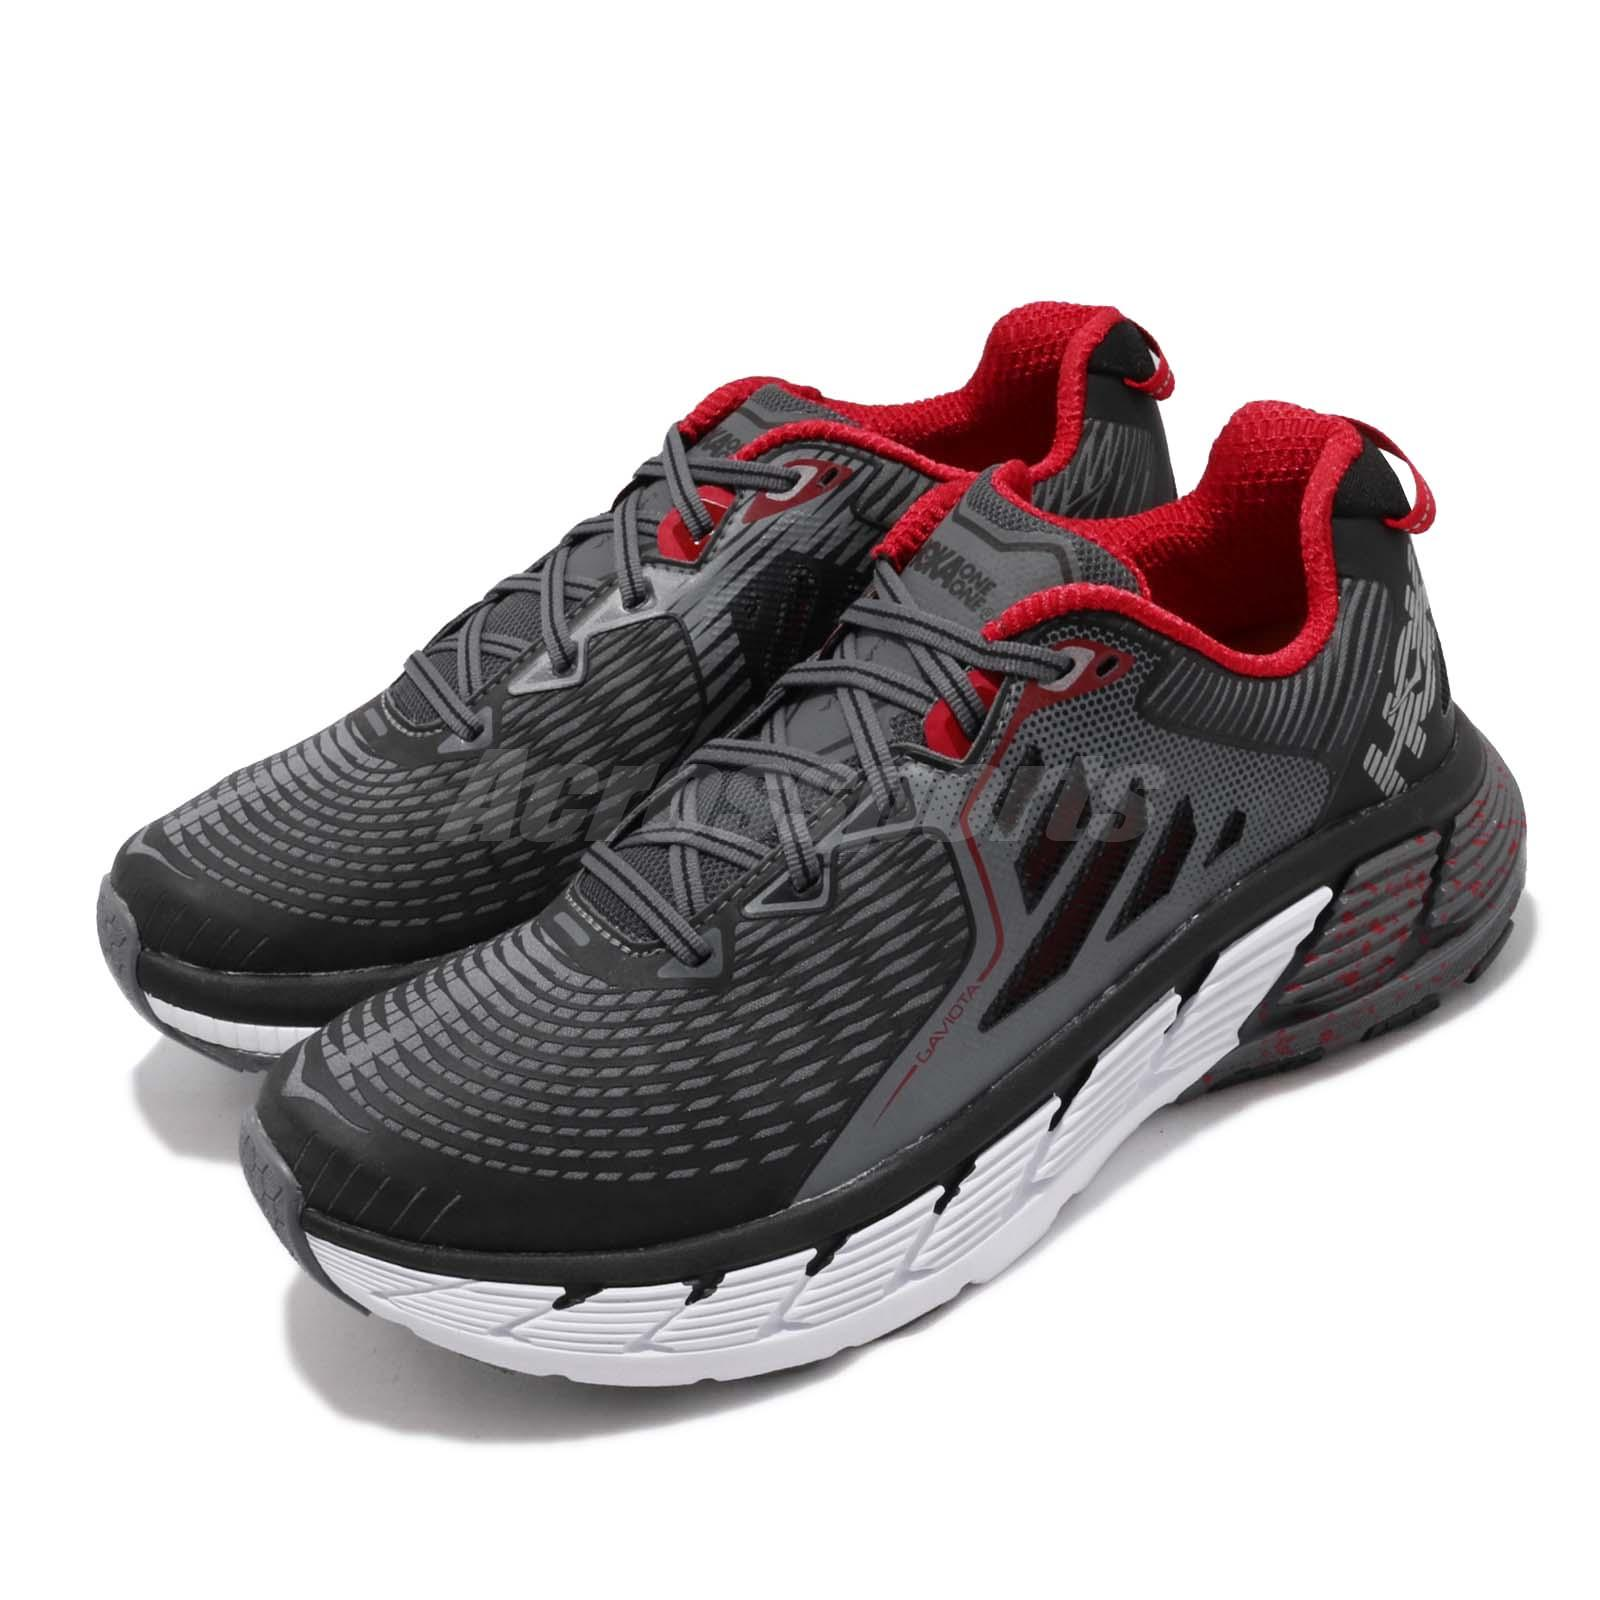 new styles 91f2c 47658 Details about Hoka One One Gaviota Wide Black White Red Mens Cushion  Running Shoe 1019623-BFON